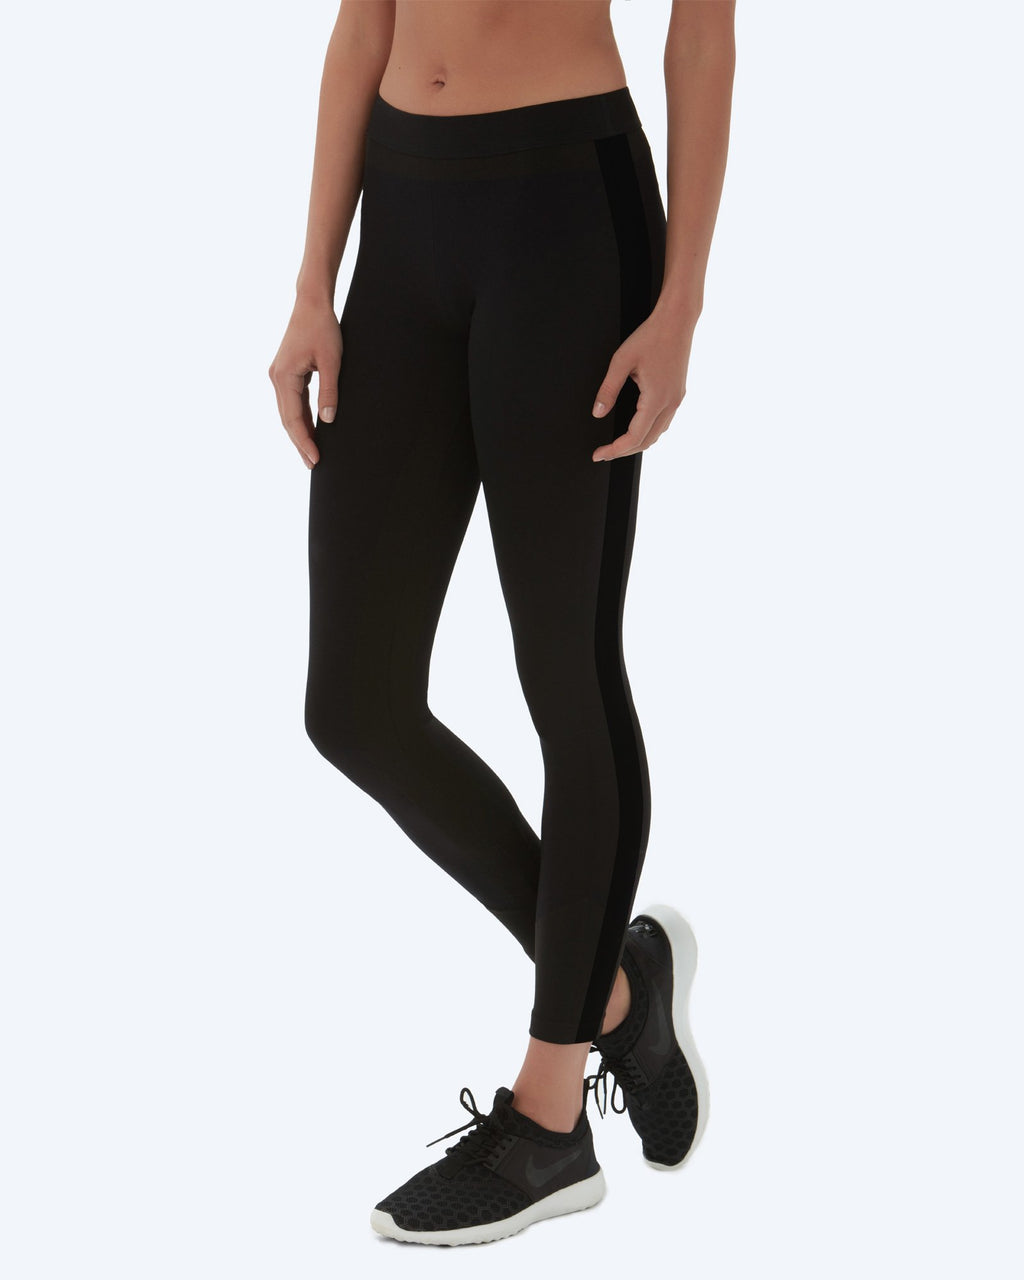 Alexis Fashion Legging - Black - Vaara